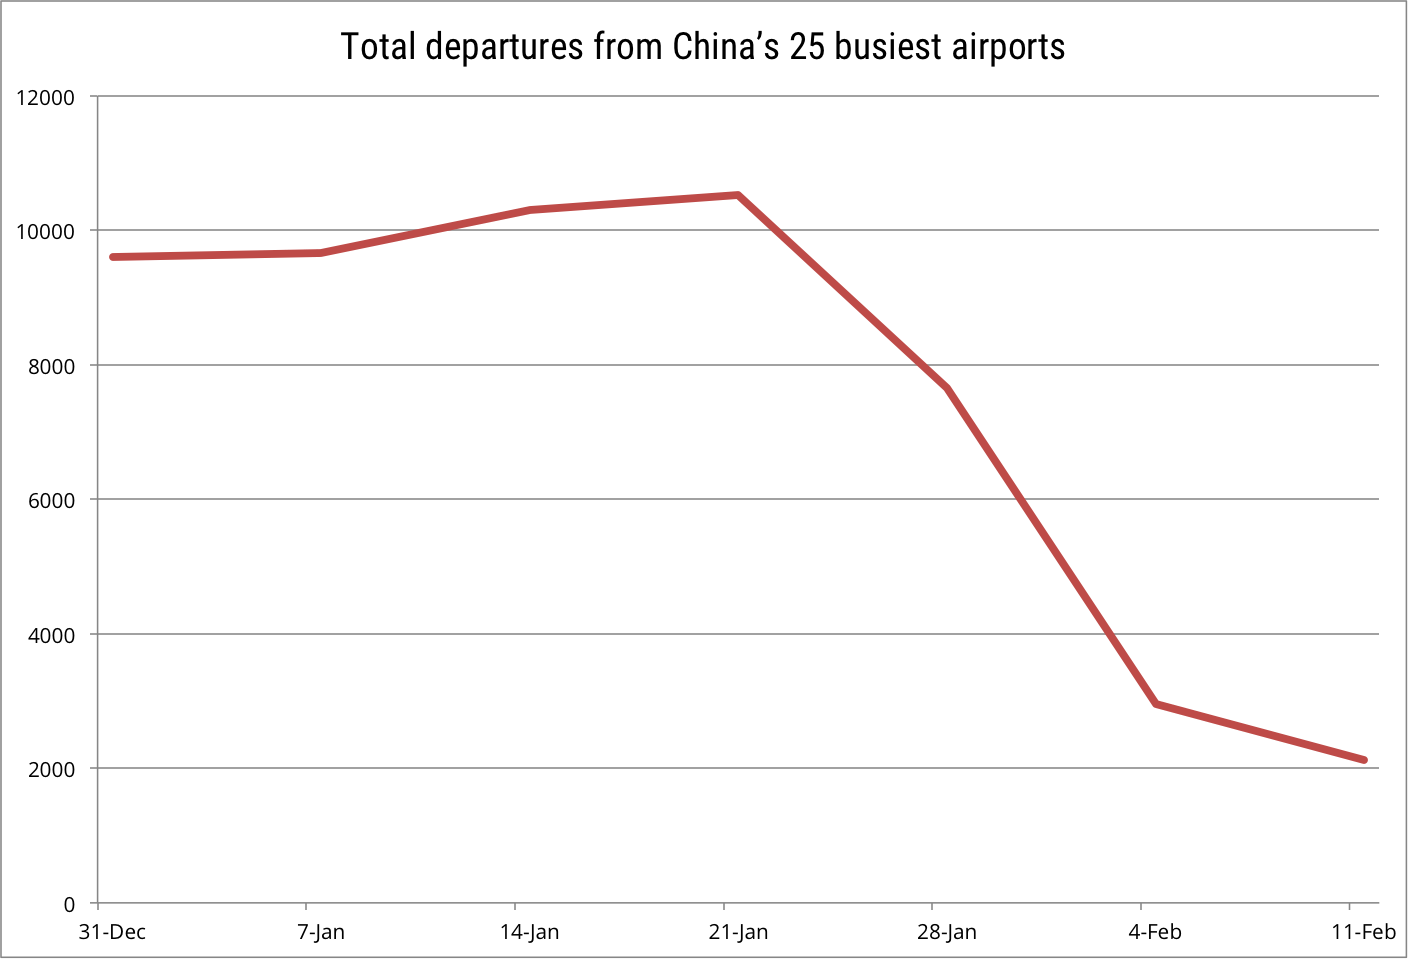 Total departures from China's 25 busiest airports 31 Dec to 11 Feb